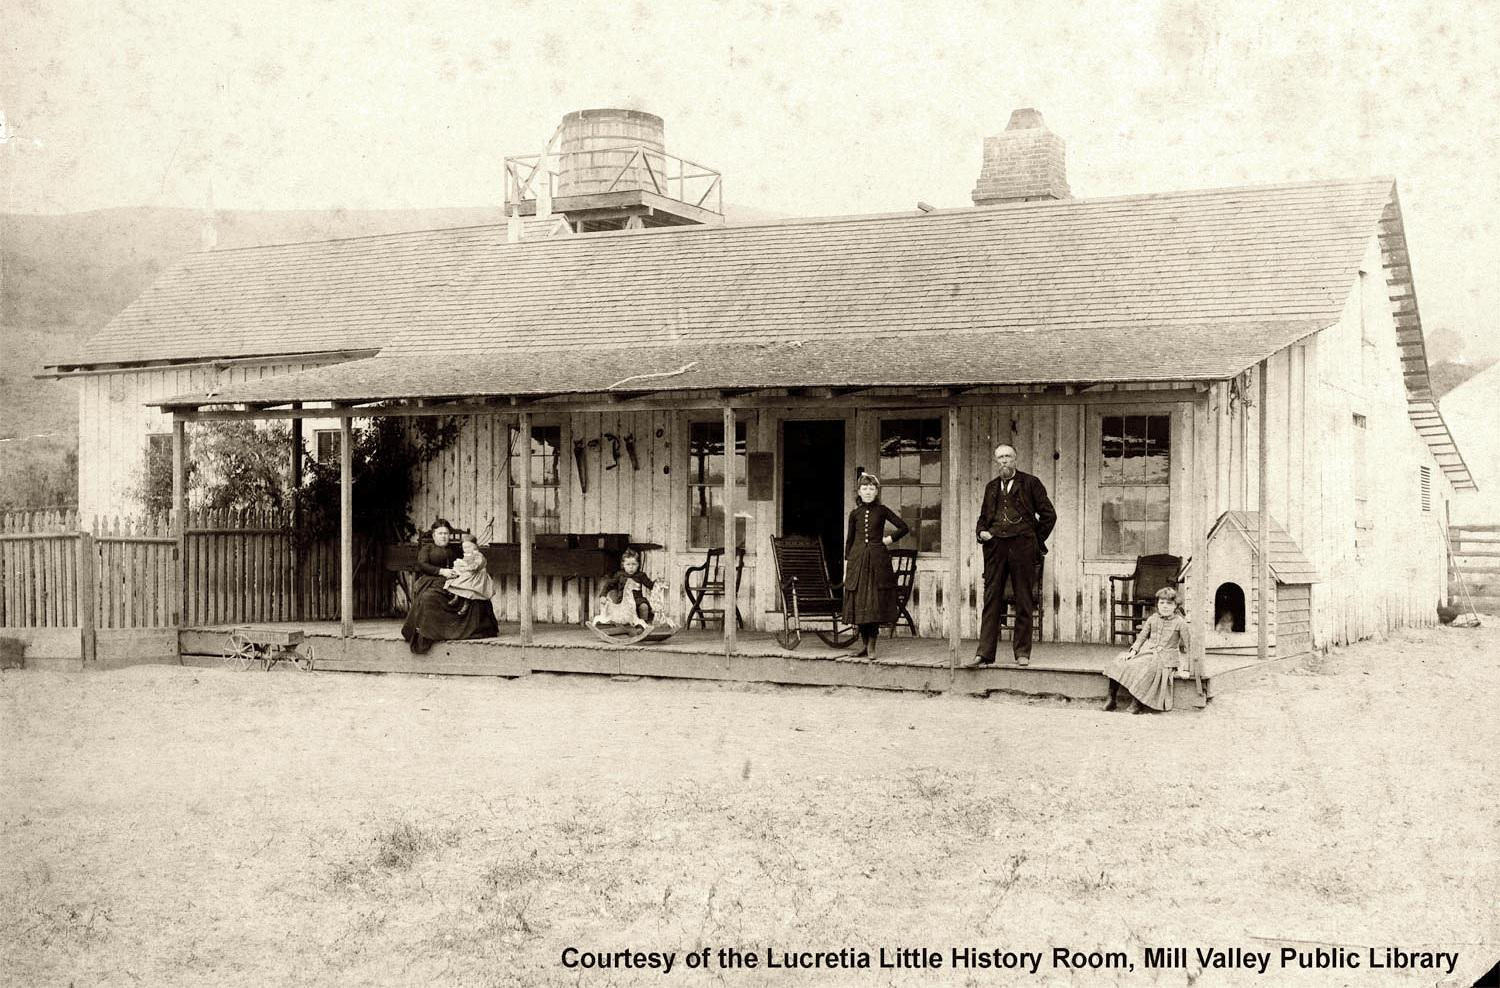 Jacob Gardner & family, The Homestead, 1888